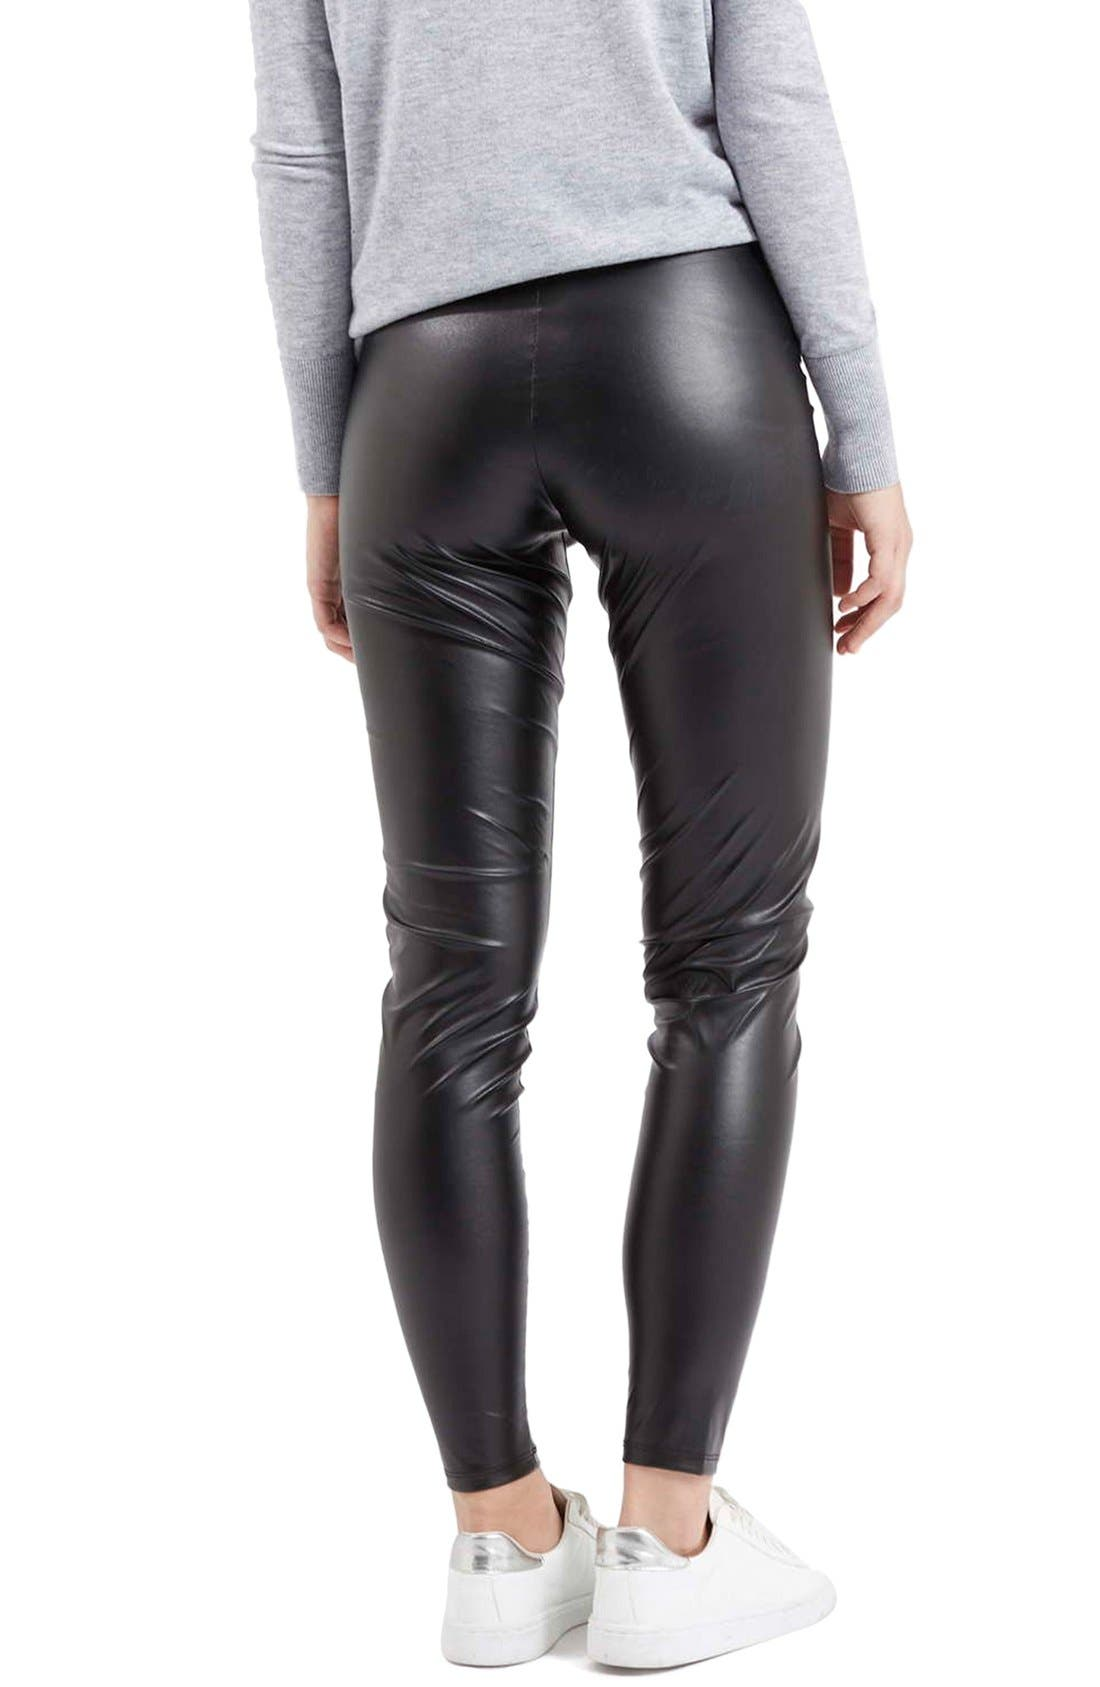 'Wet Look' Leggings,                             Alternate thumbnail 3, color,                             001